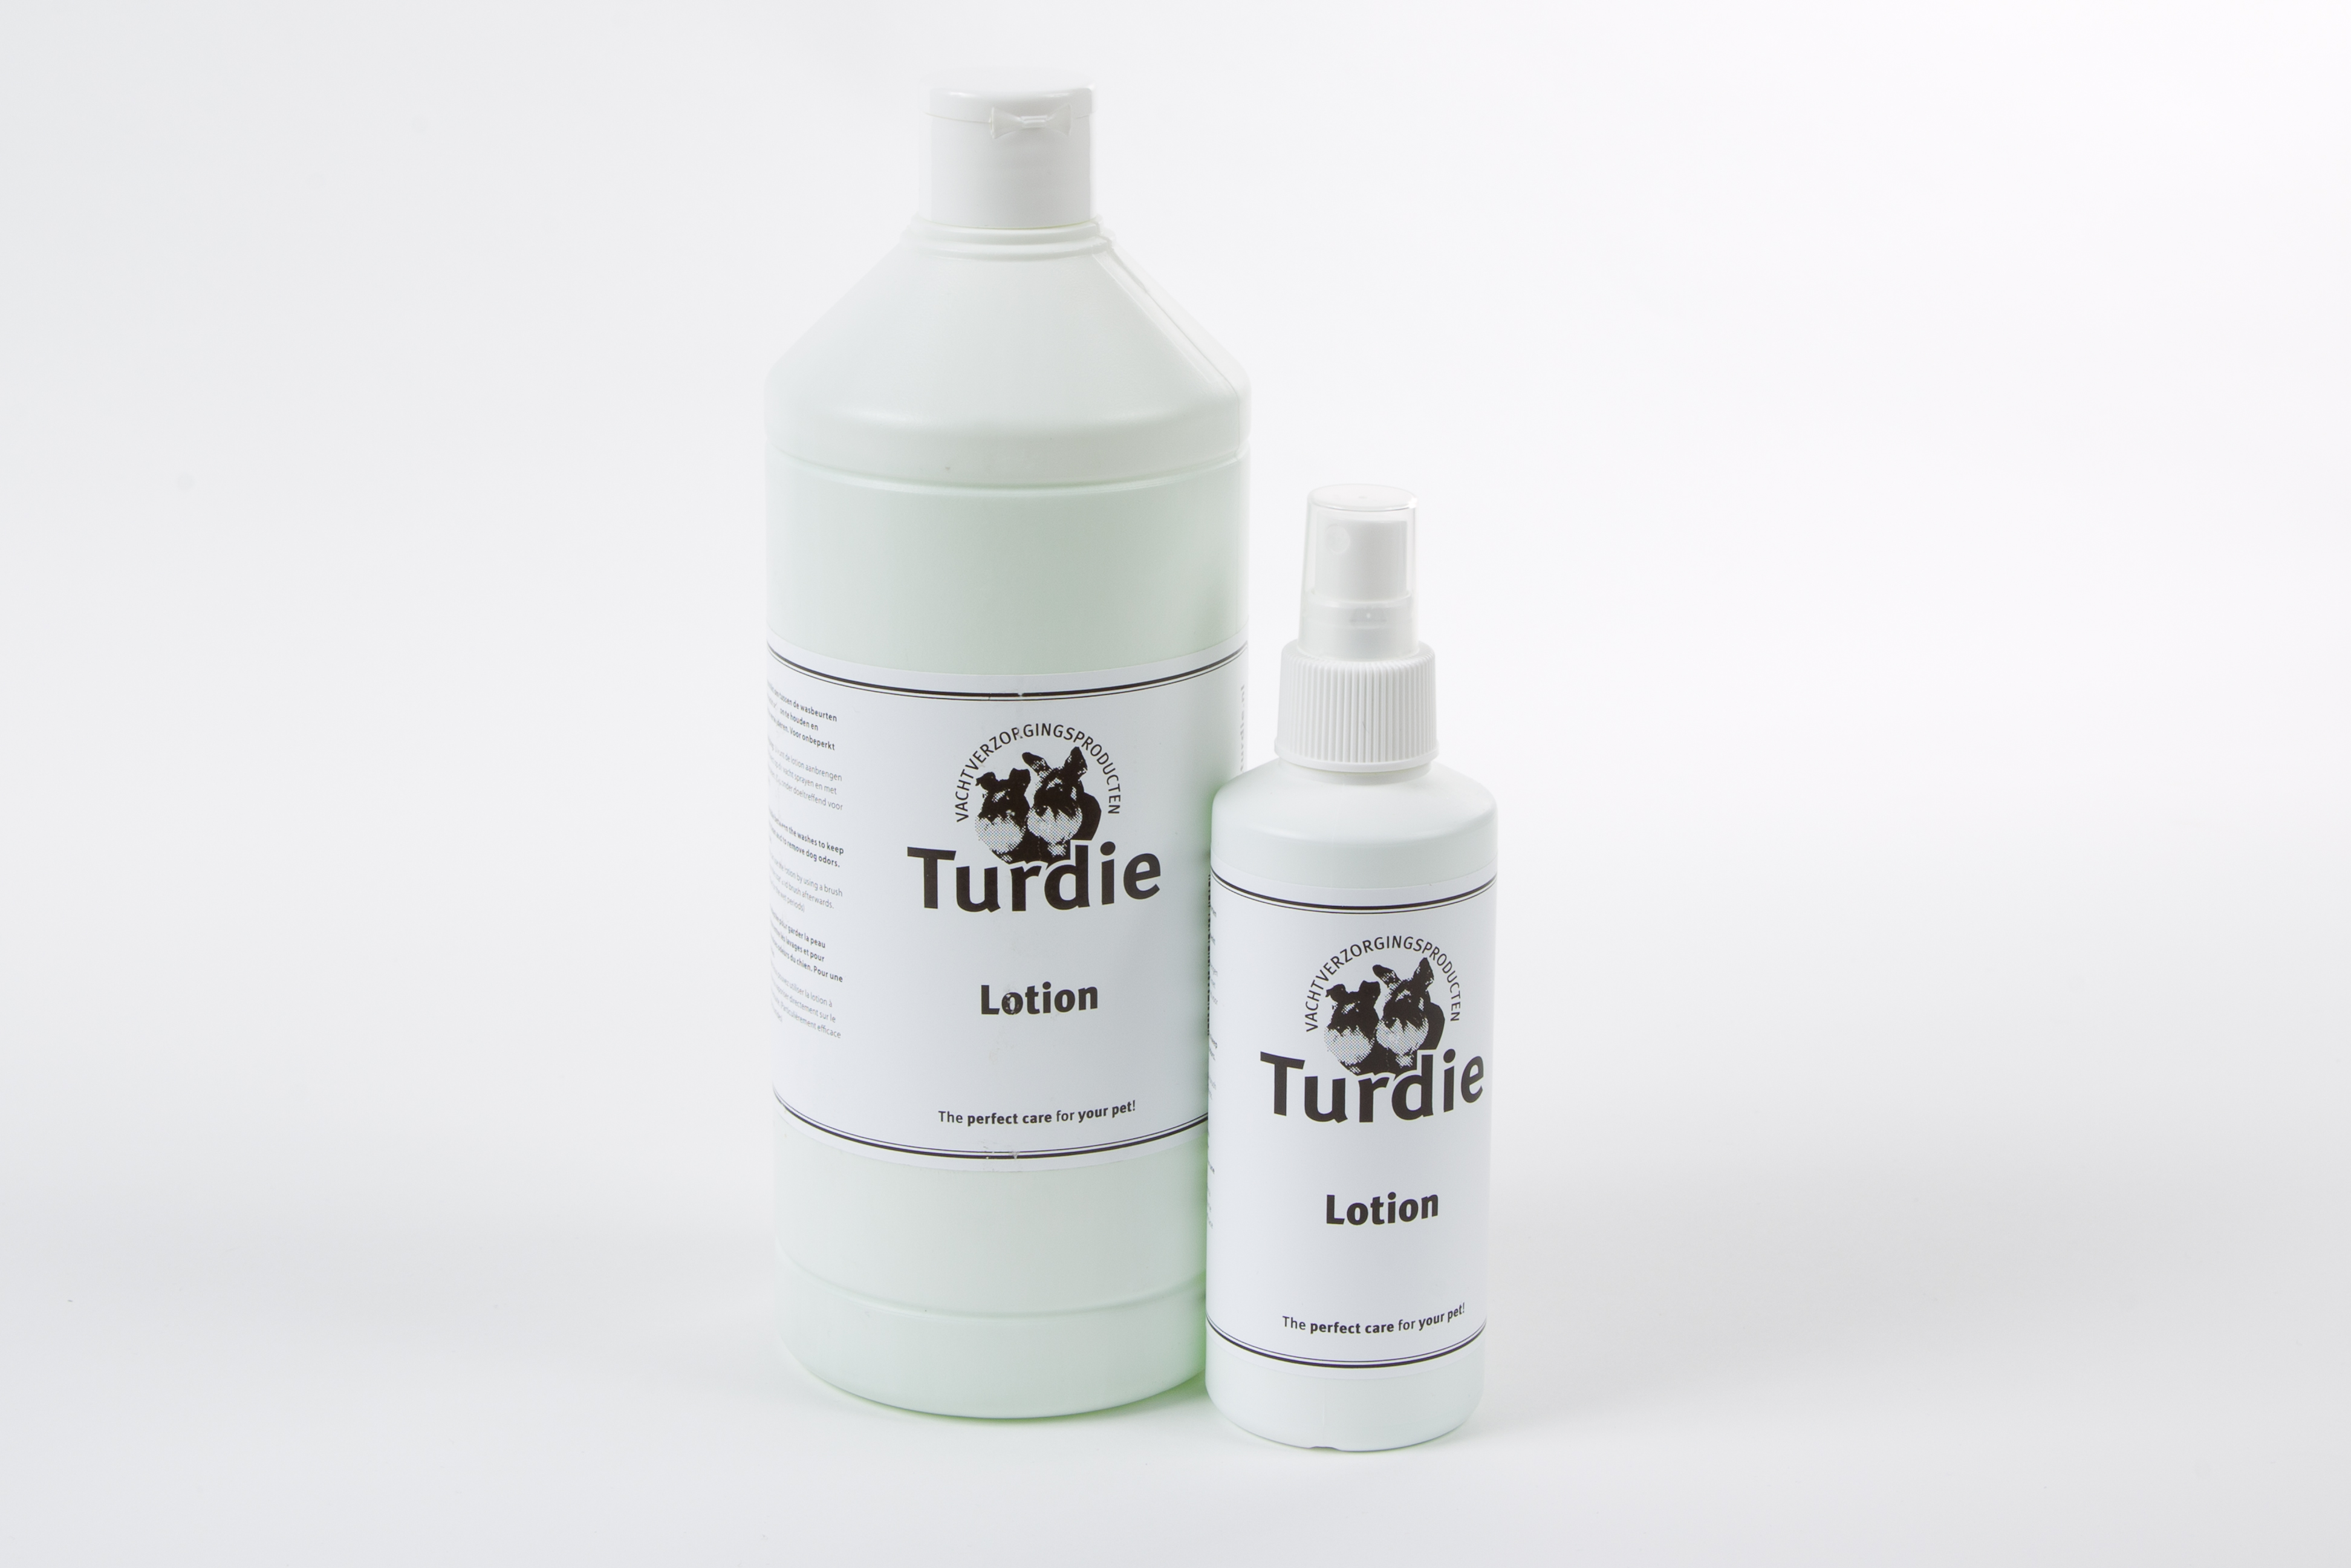 Pleťová voda - Turdie Lotion (1000 ml)